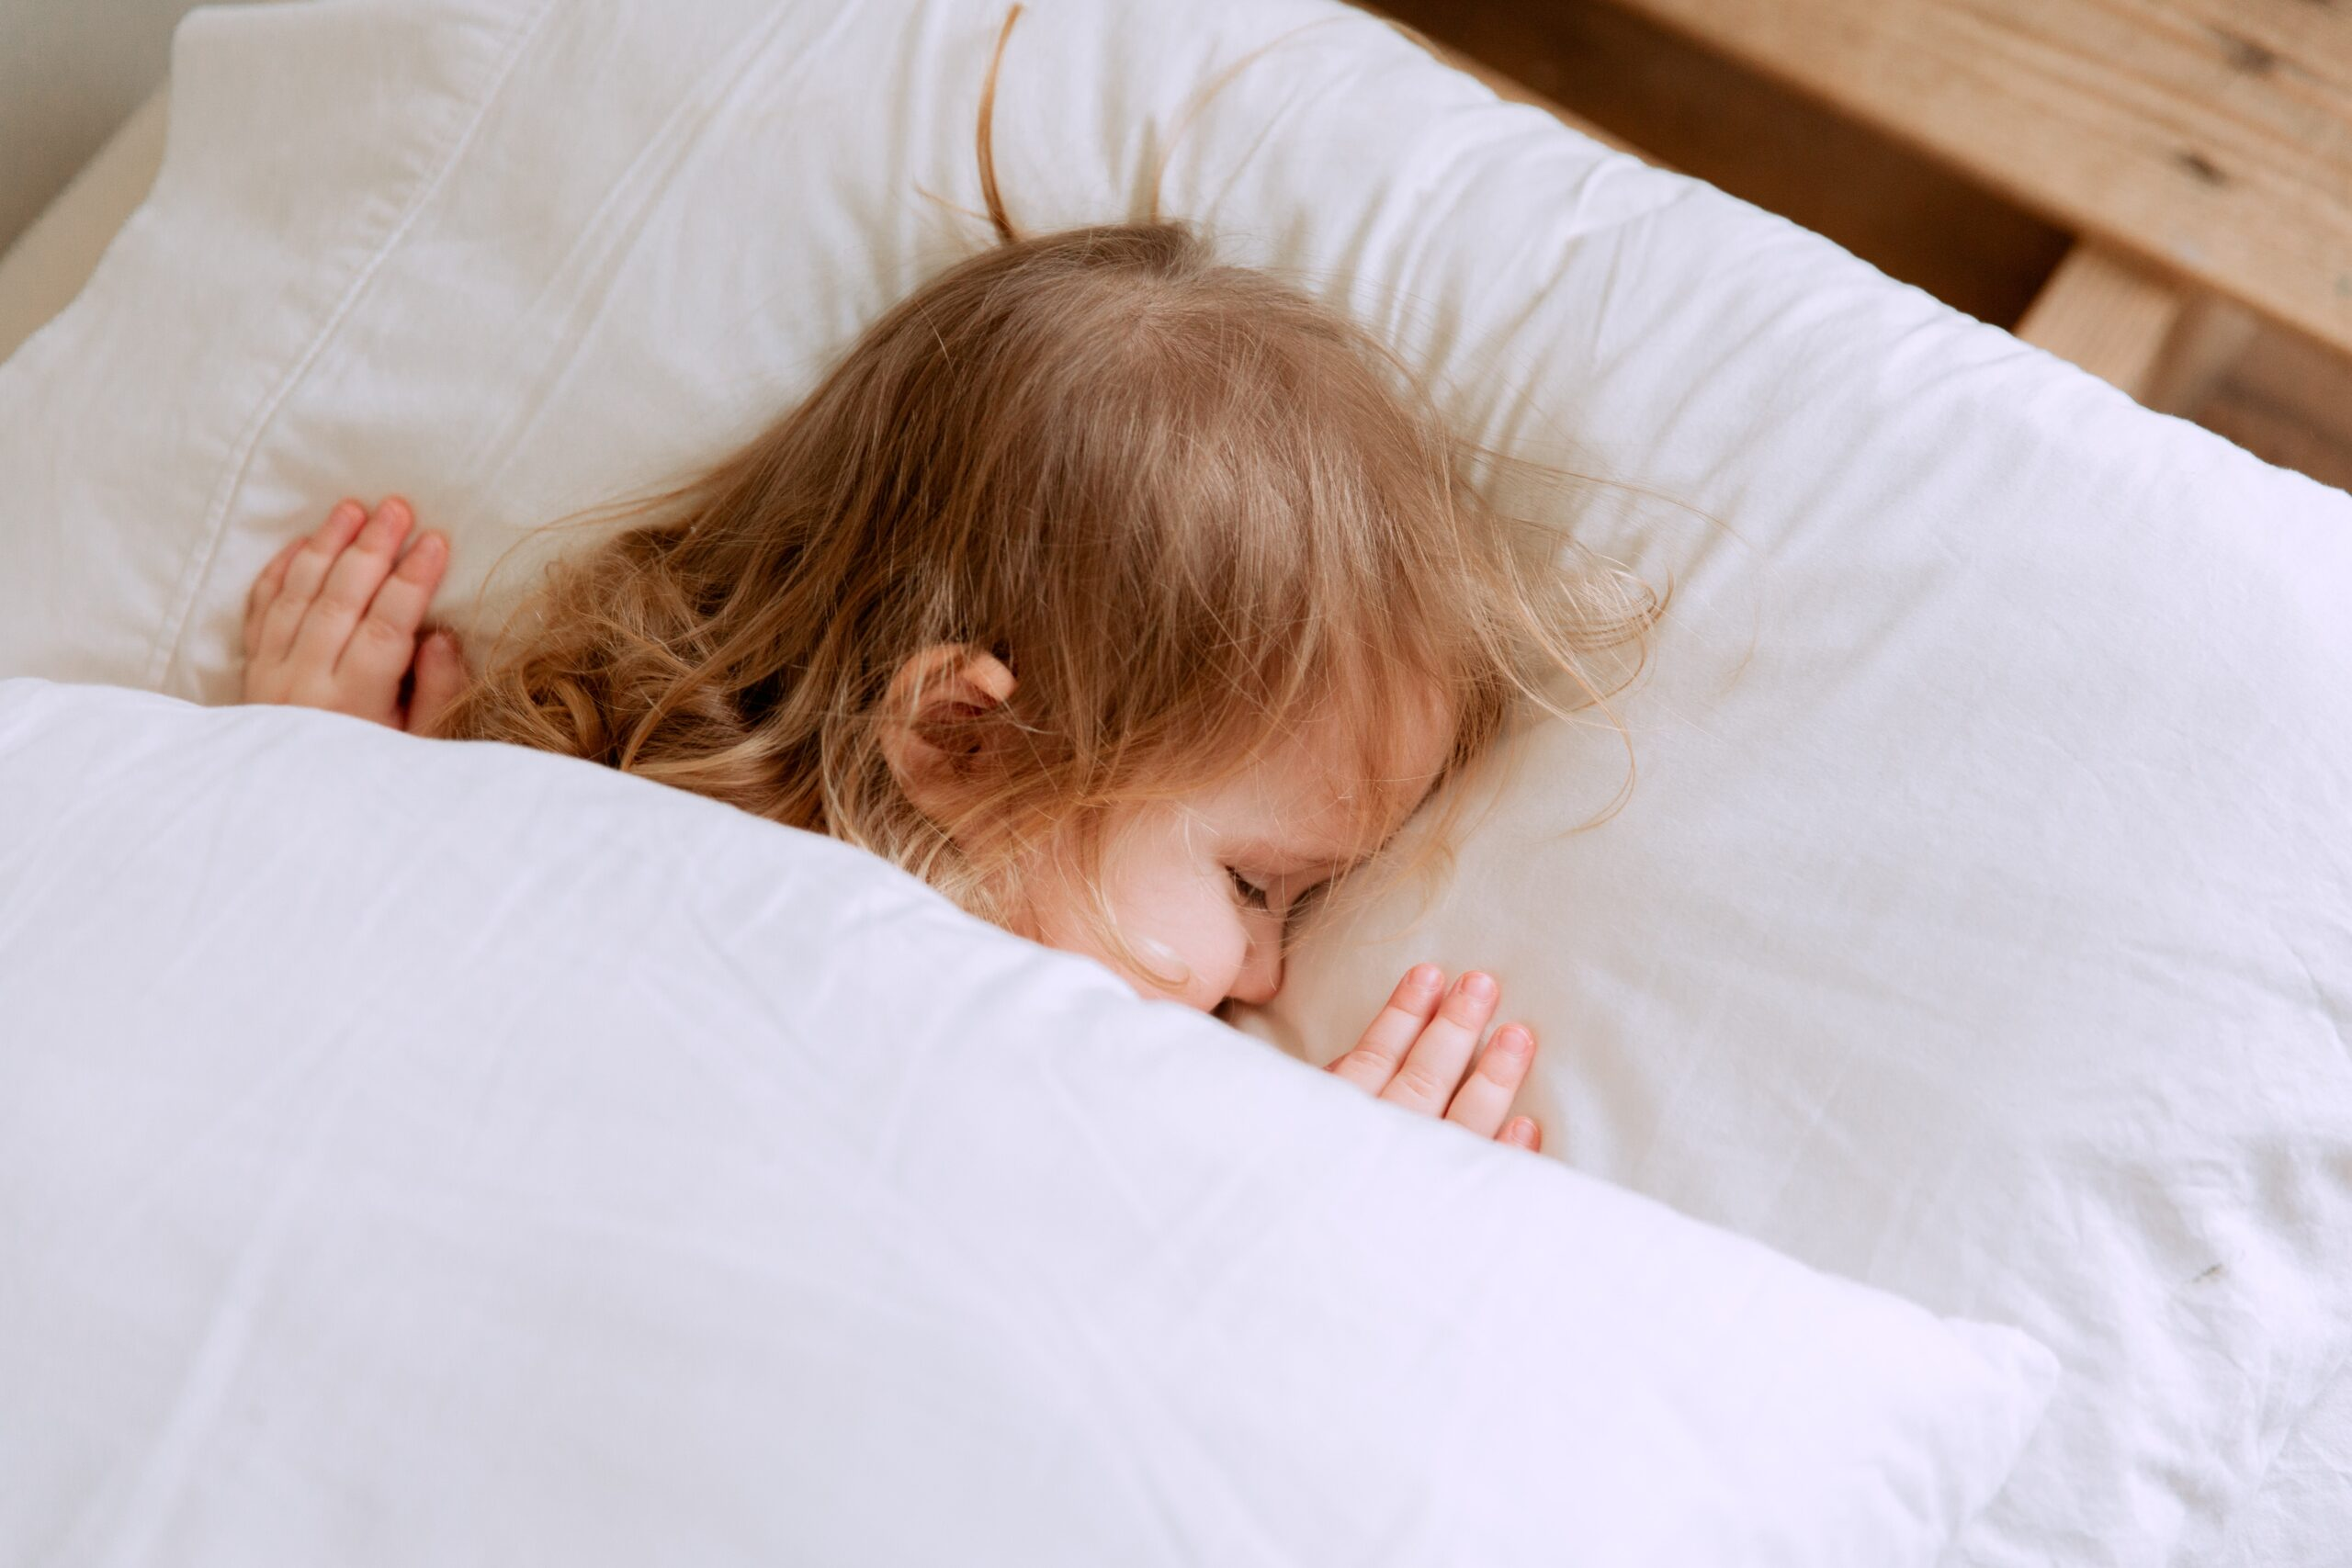 Toddler Waking Up Screaming: What Do I Need To Do?